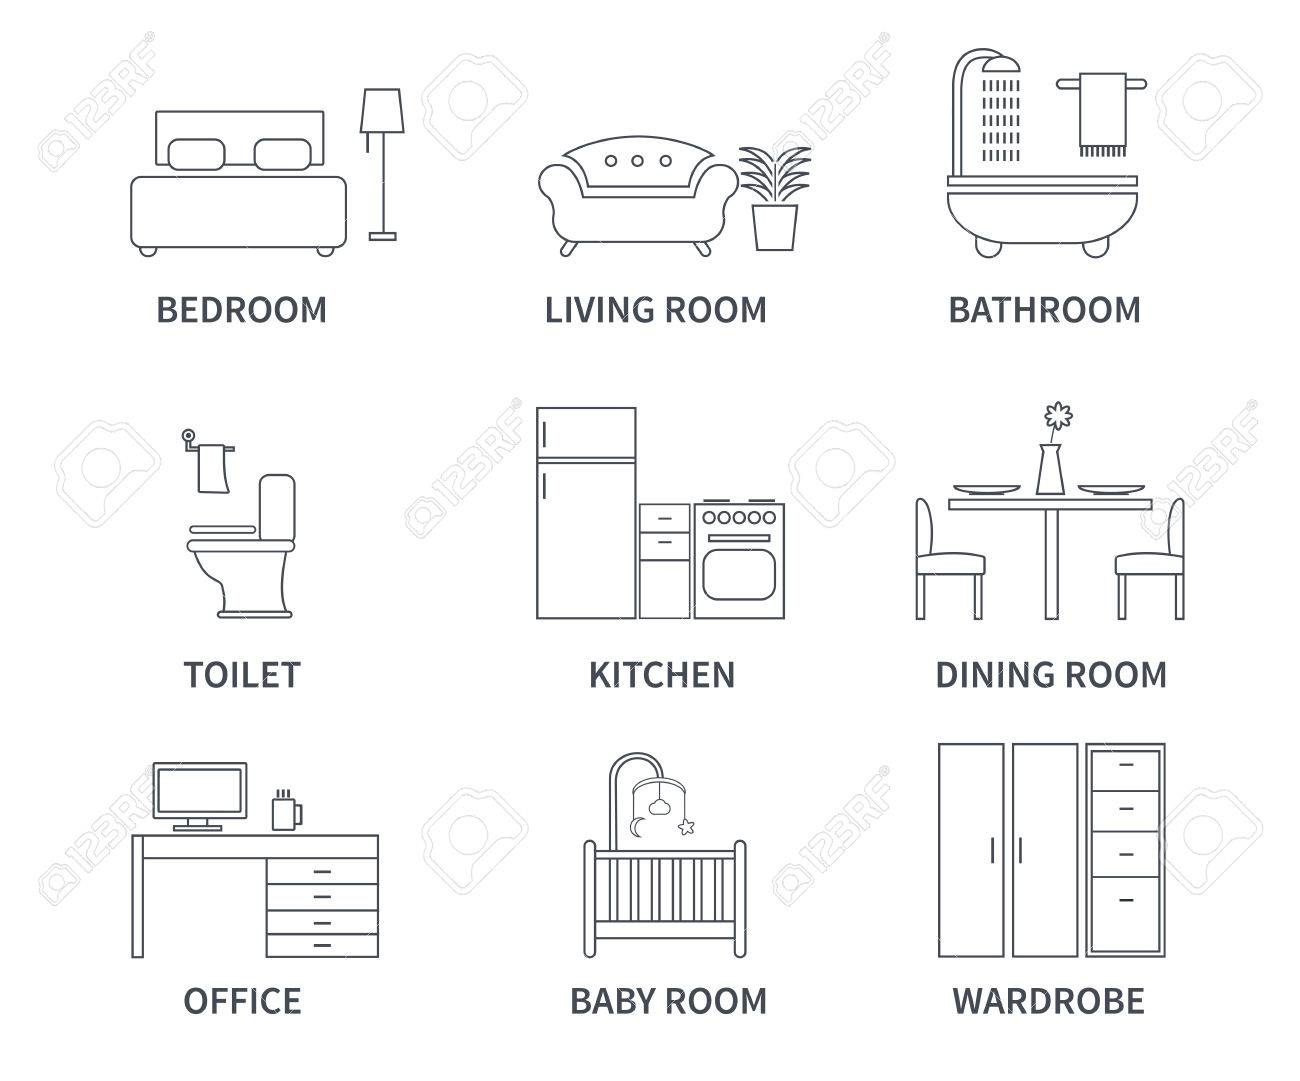 Home Interior Design Icons For Bedroom, Living Room, Bathroom, Kitchen,  Dining Room Part 61